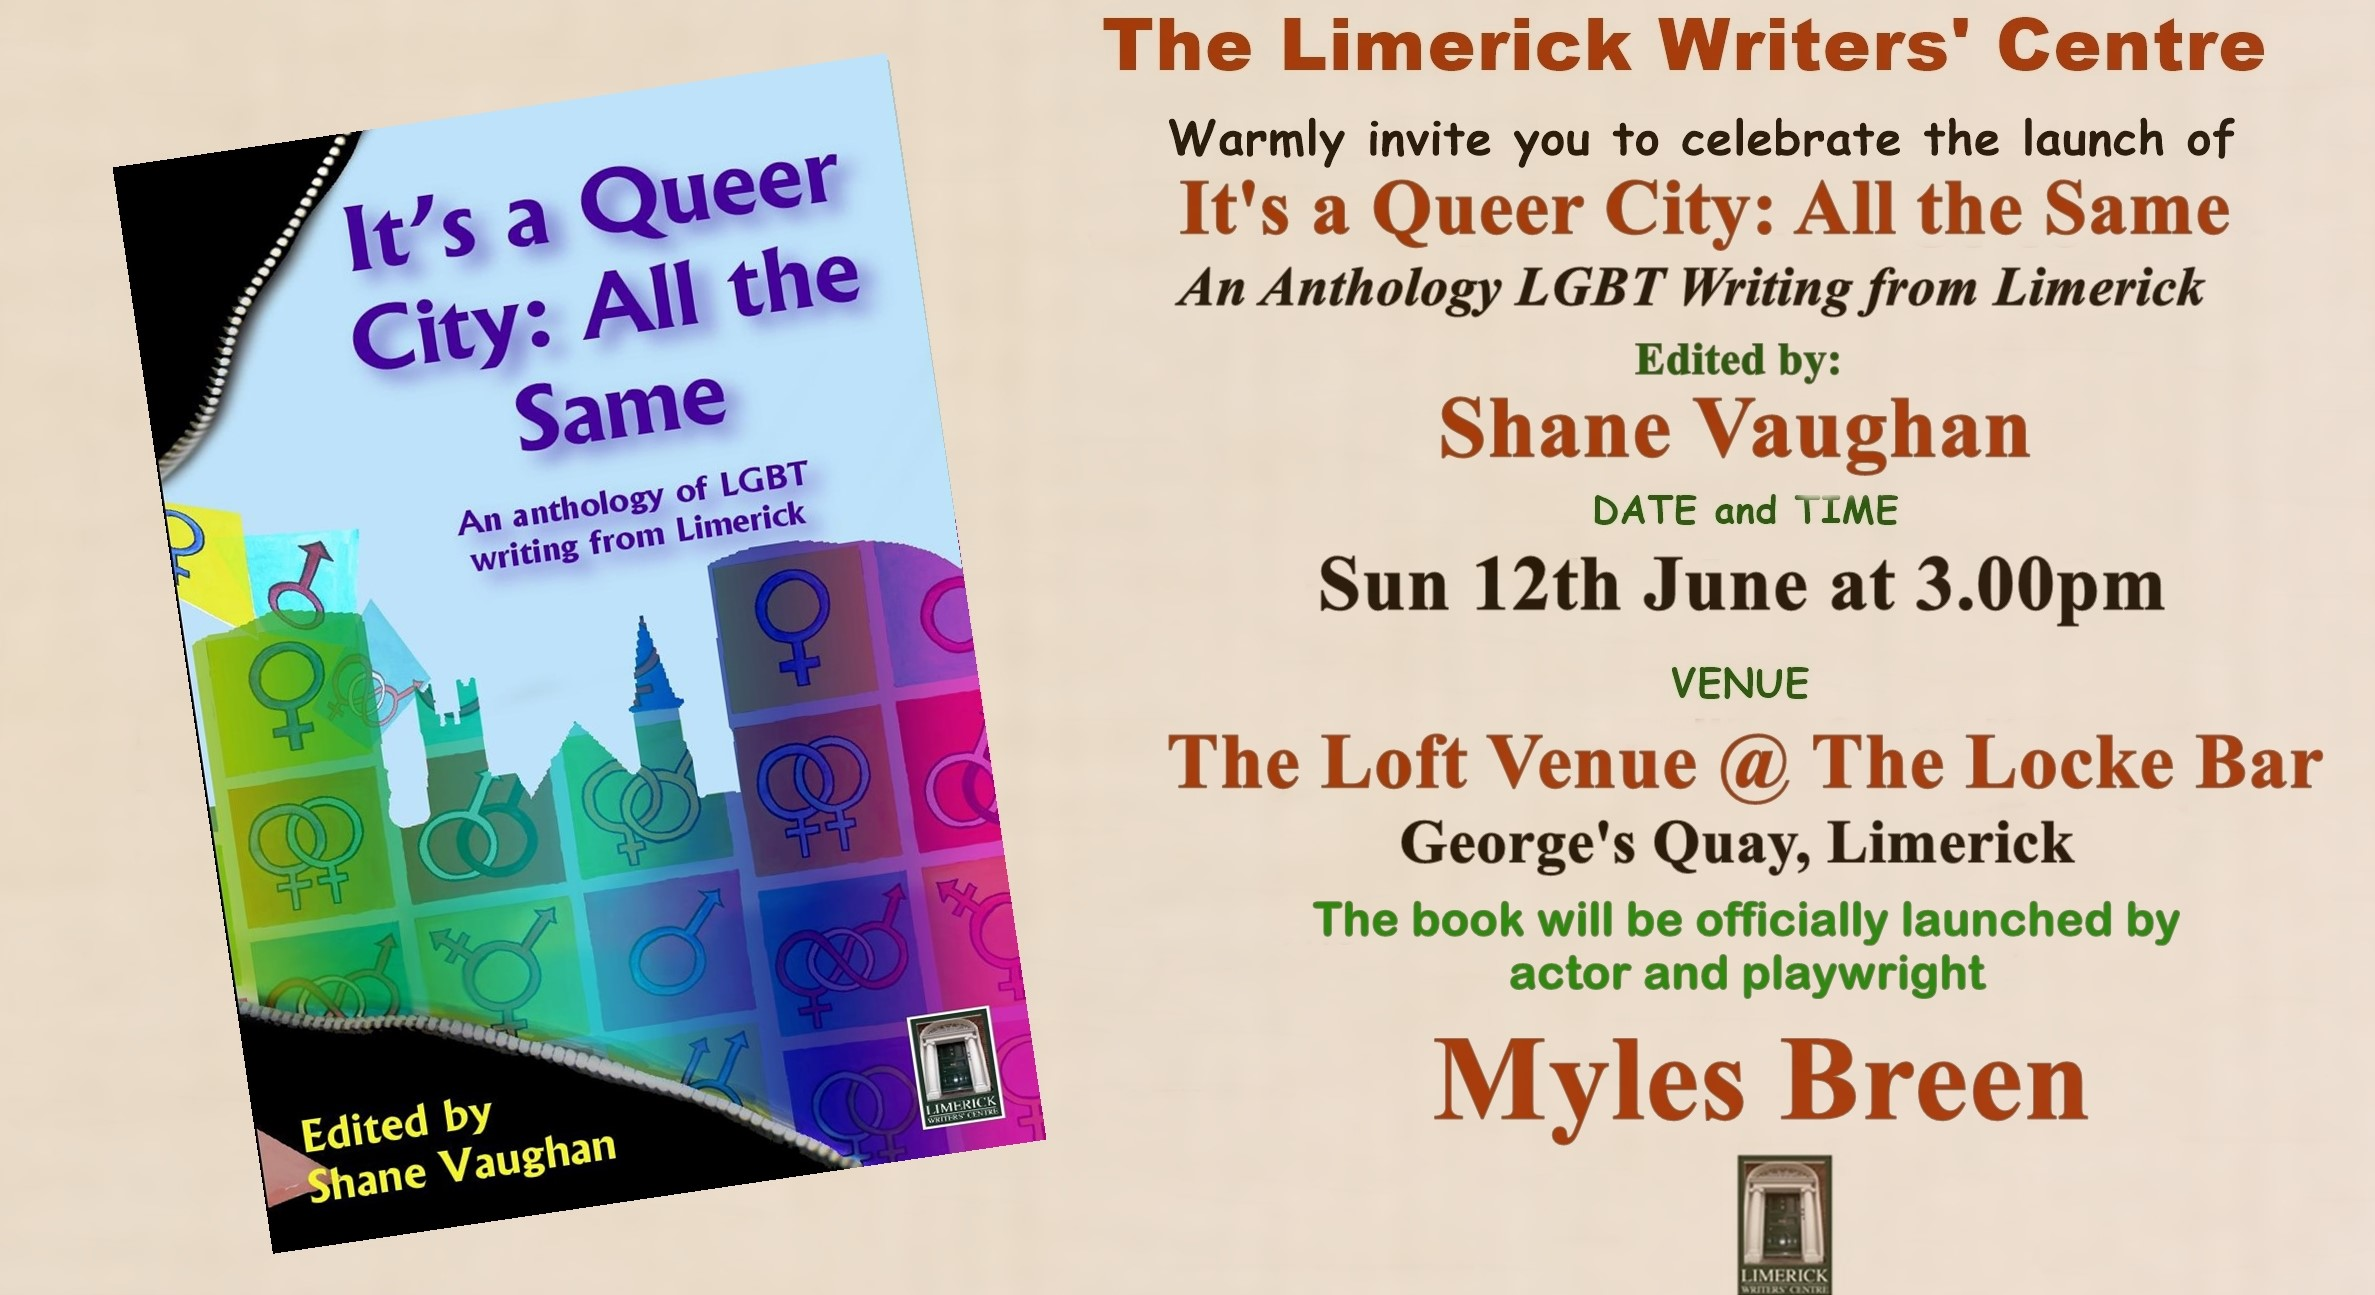 Limerick Writers Centre launches Its a Queer City All the Same